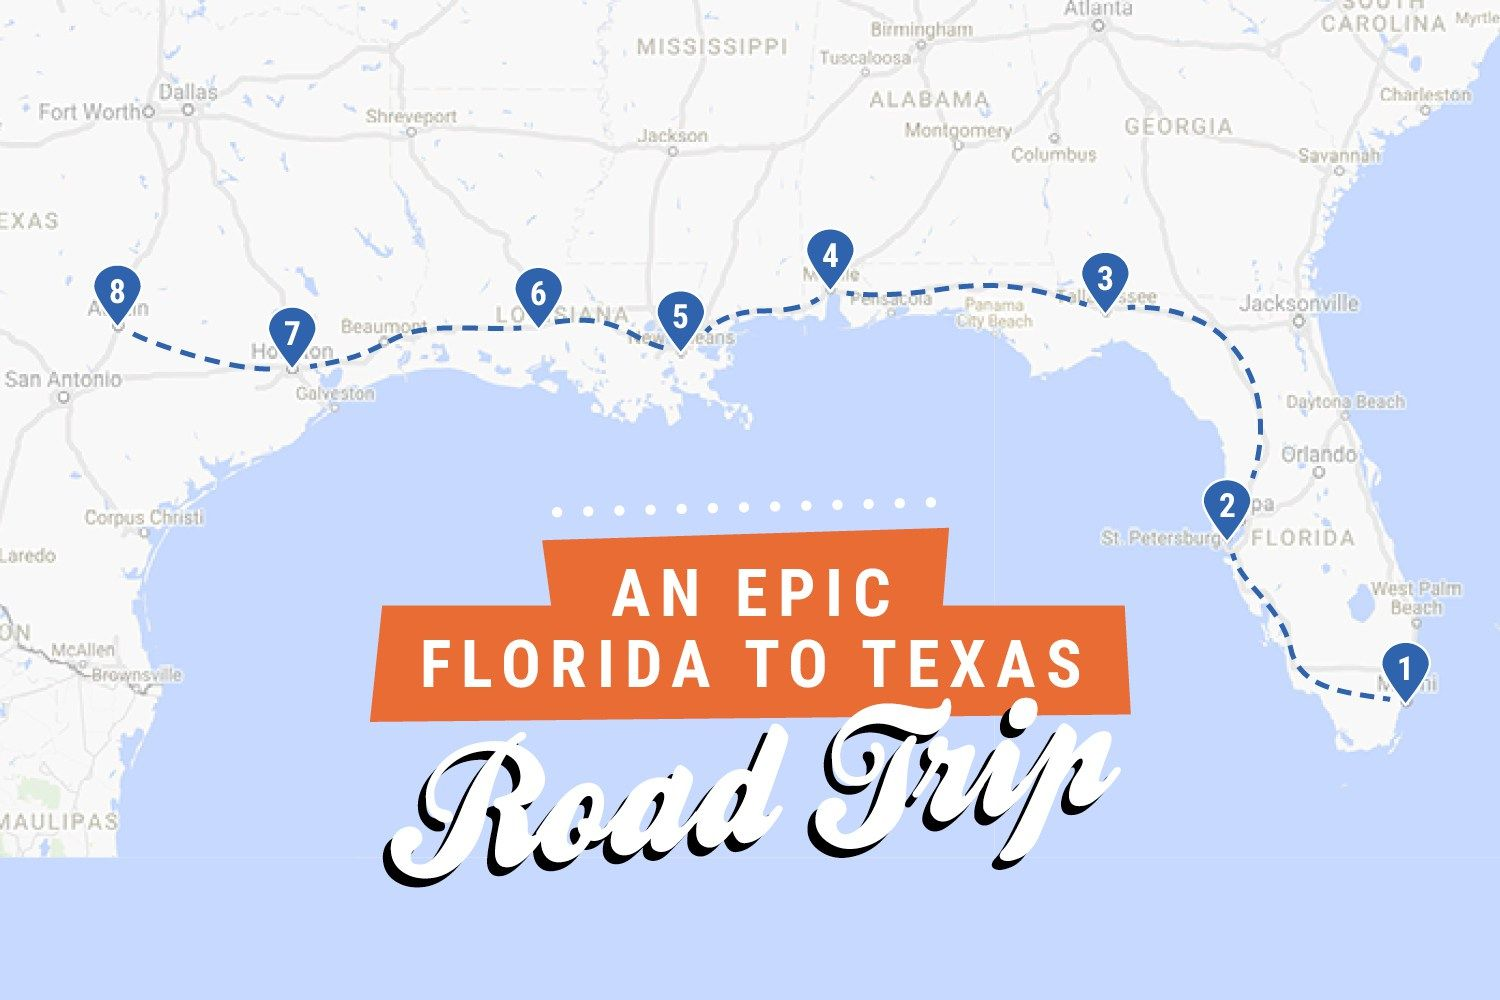 Texas To Florida Map Florida to Texas: An epic southern road trip itinerary   Road